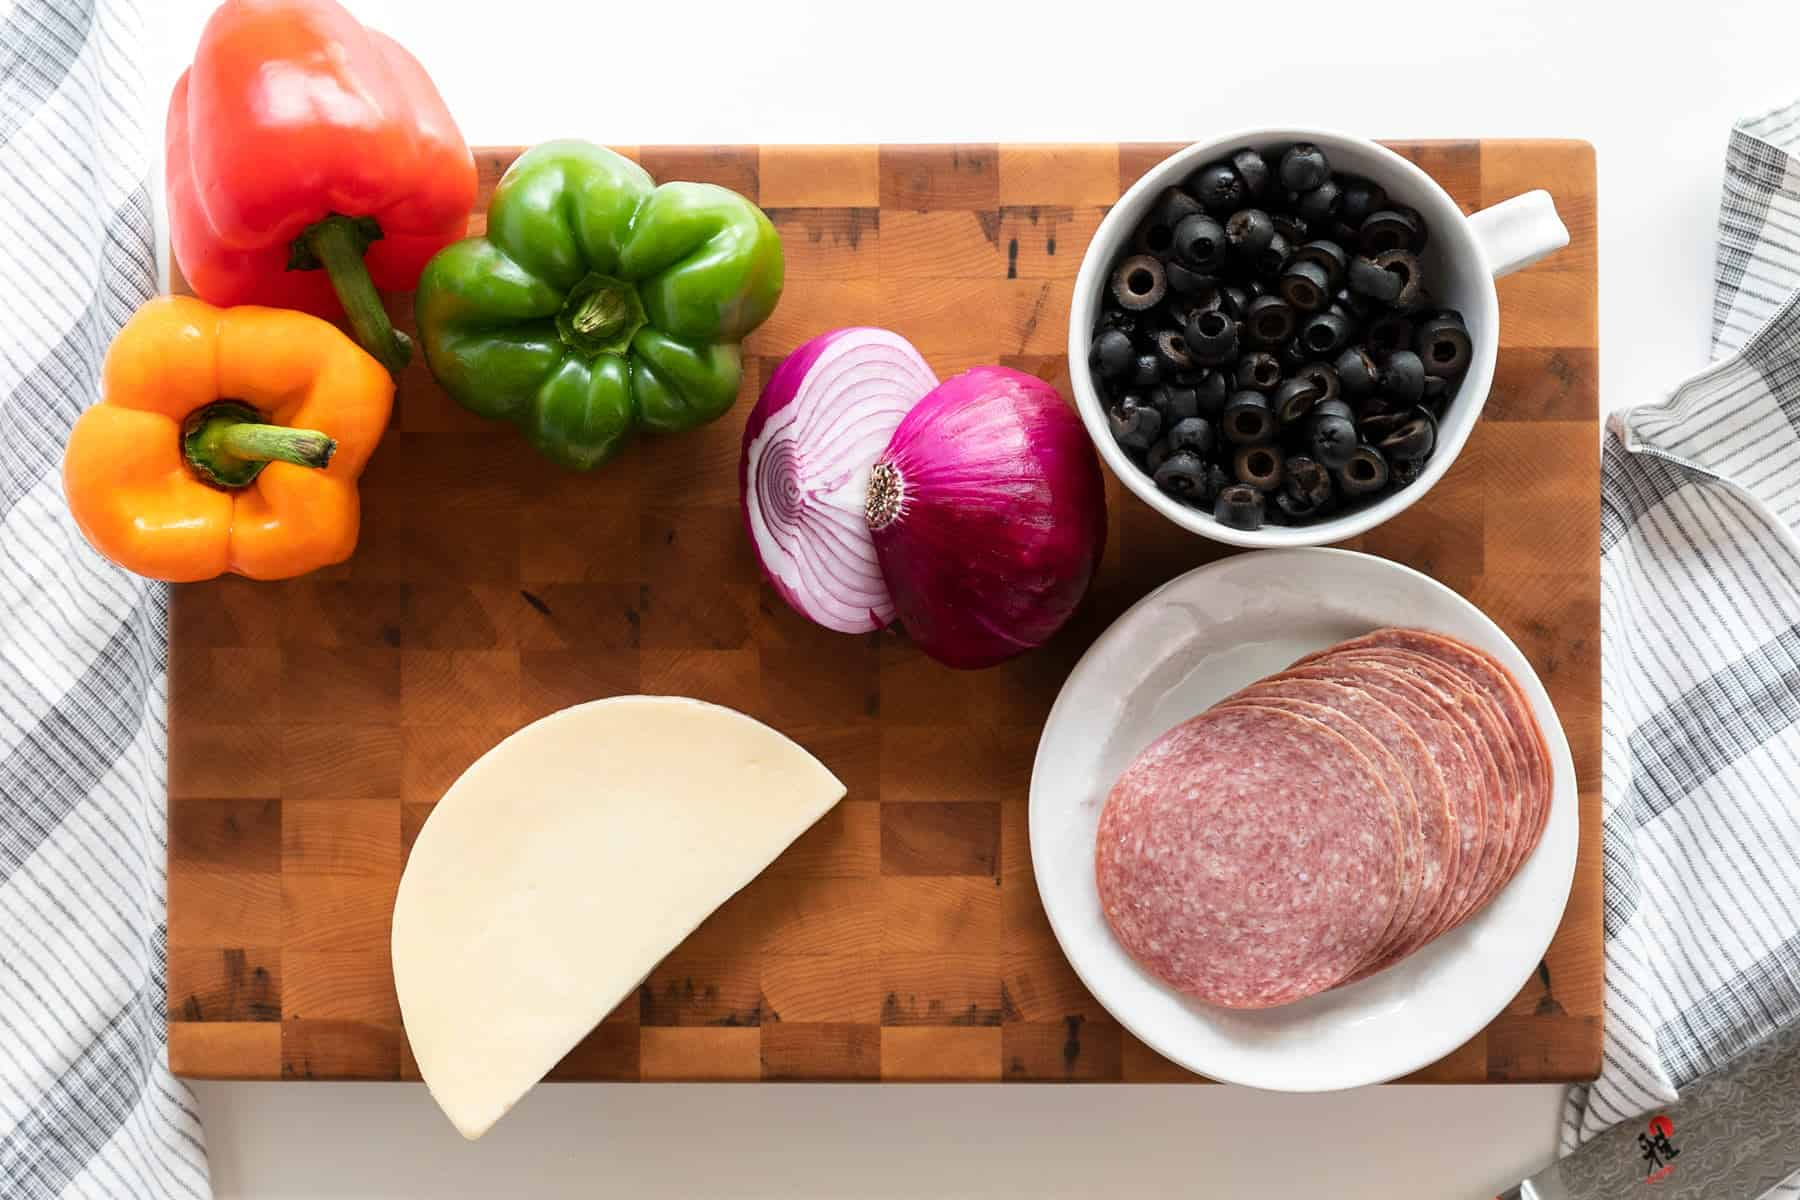 ingredients: red pepper, orange bell pepper, green bell pepper, provolone cheese block, salami, red onion, sliced black olives